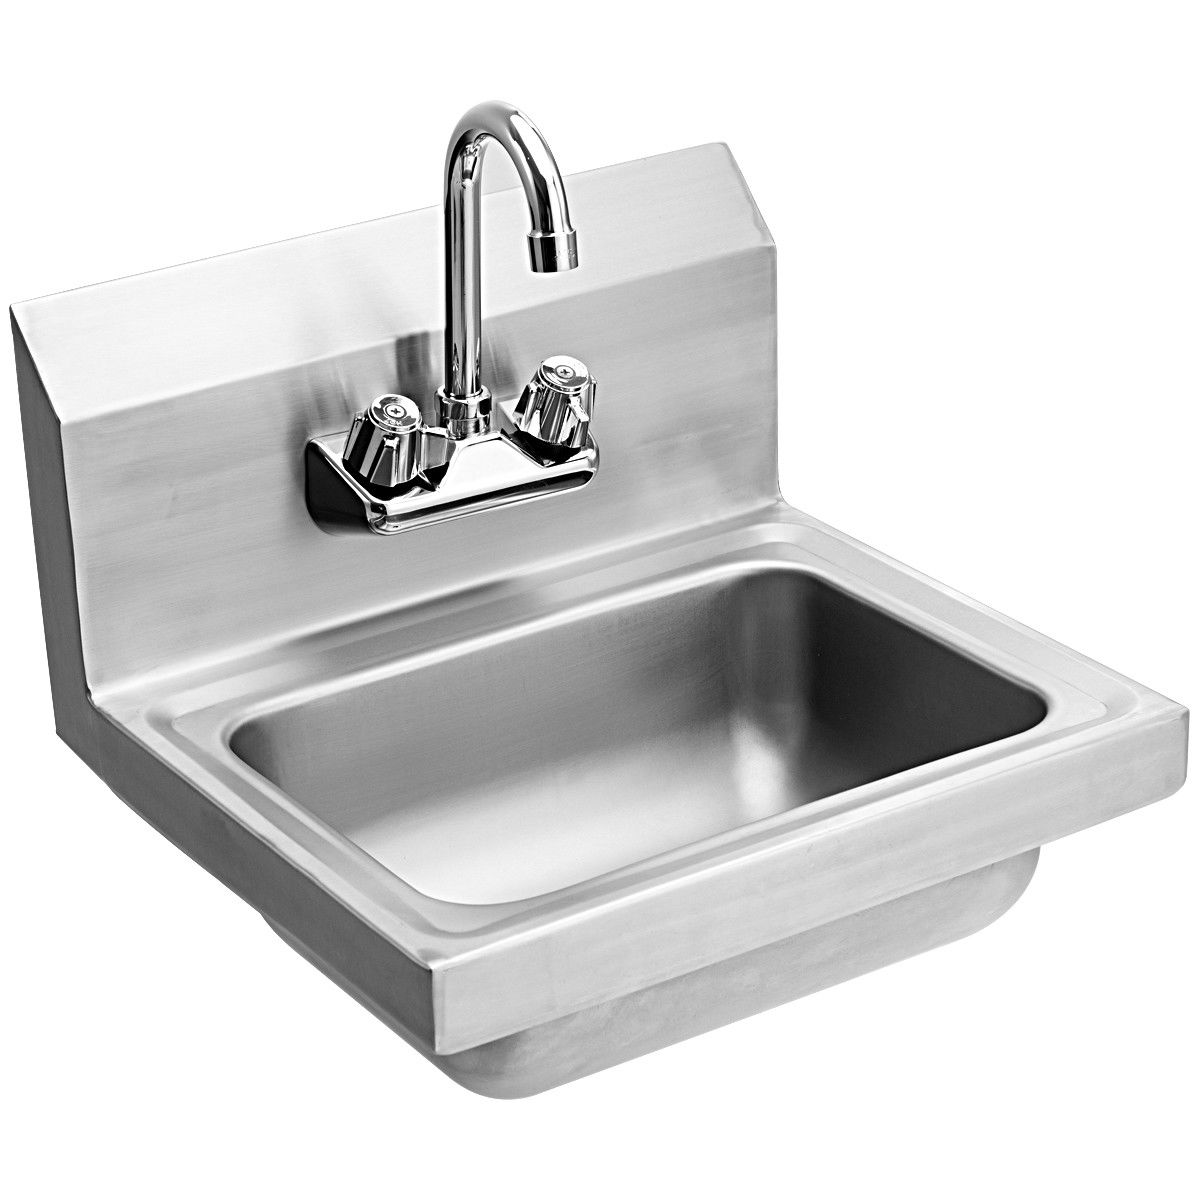 costway commercial stainless steel wall mount hand washing wash sink basin with faucet